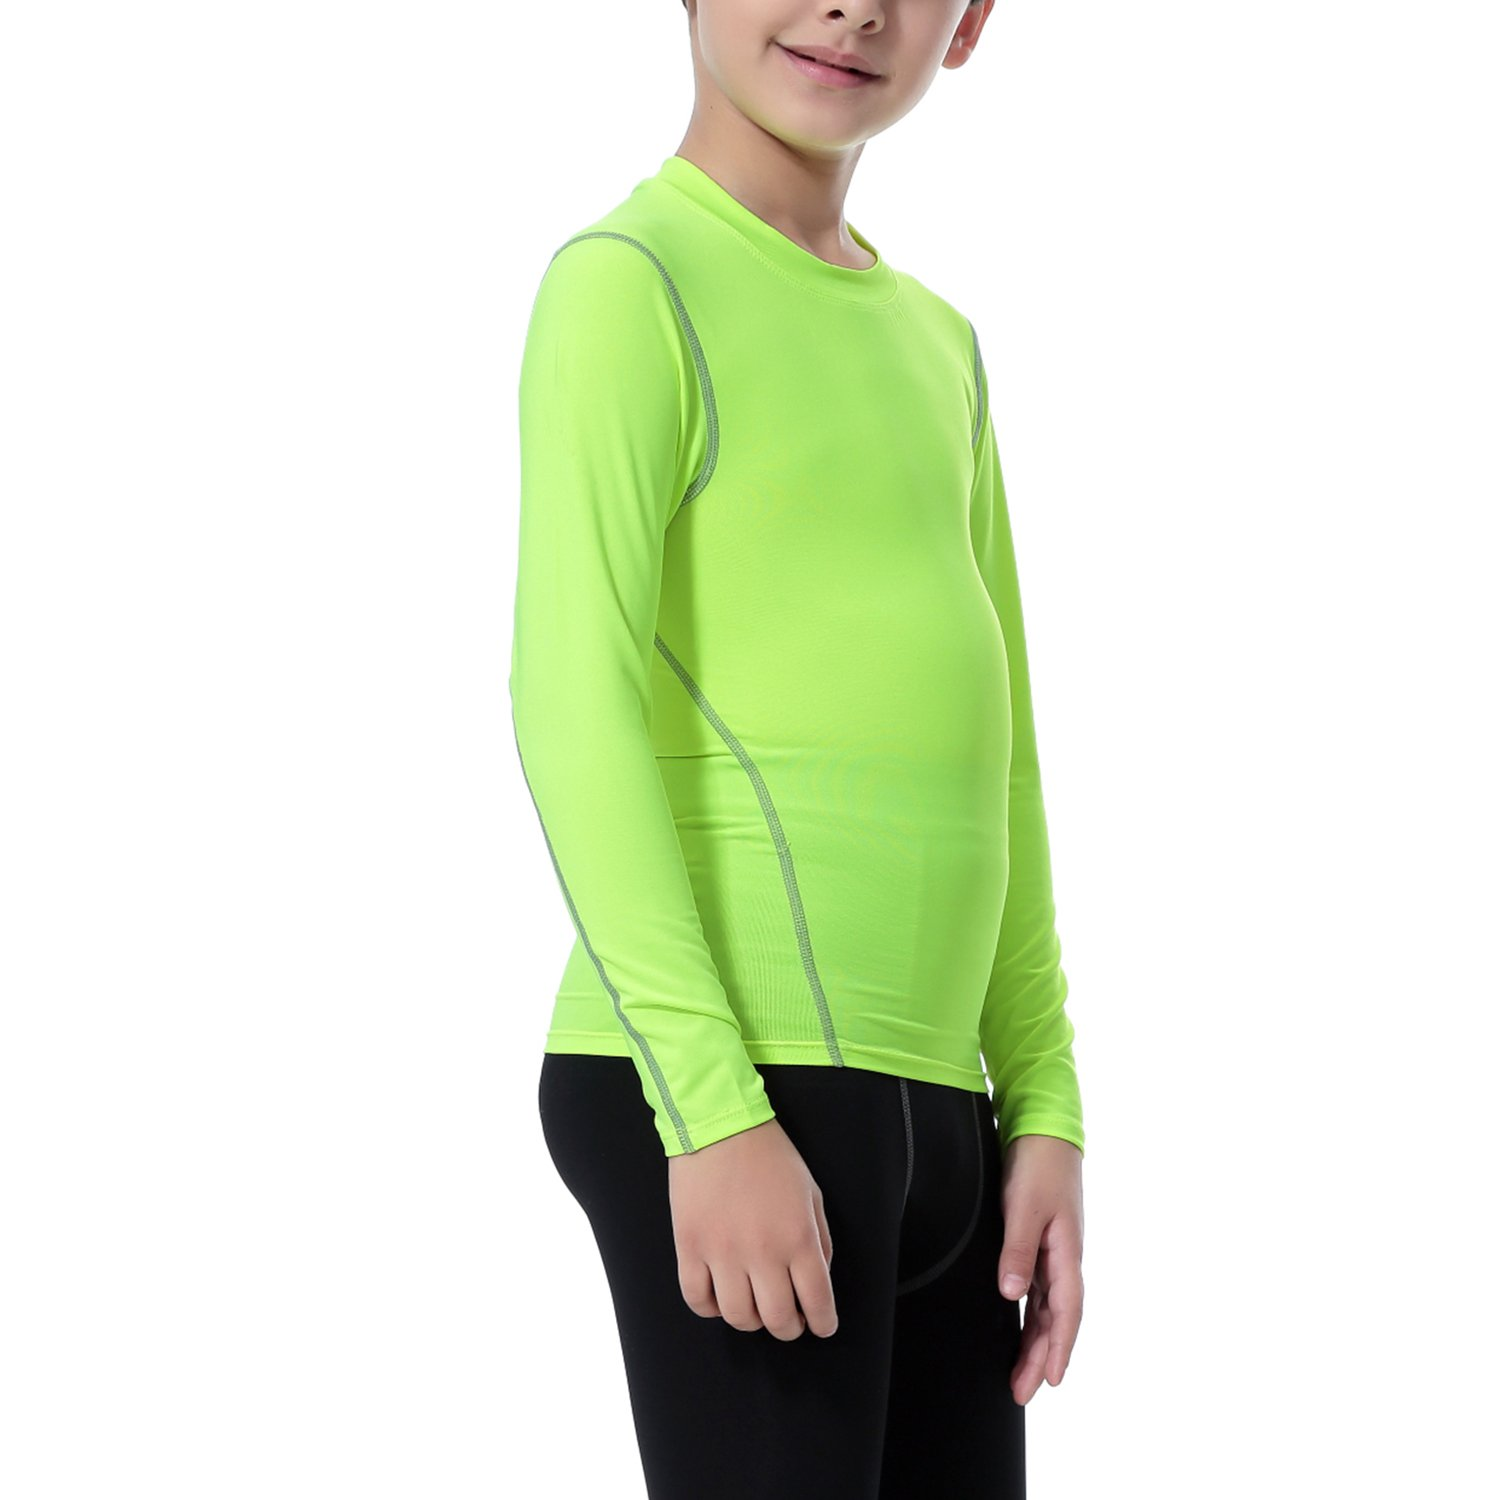 LNJLVI Boys Grils Compression Long Sleeve Shirts Skin Quick Dry Base Layer Tops Tee Pack of 3 Pcs